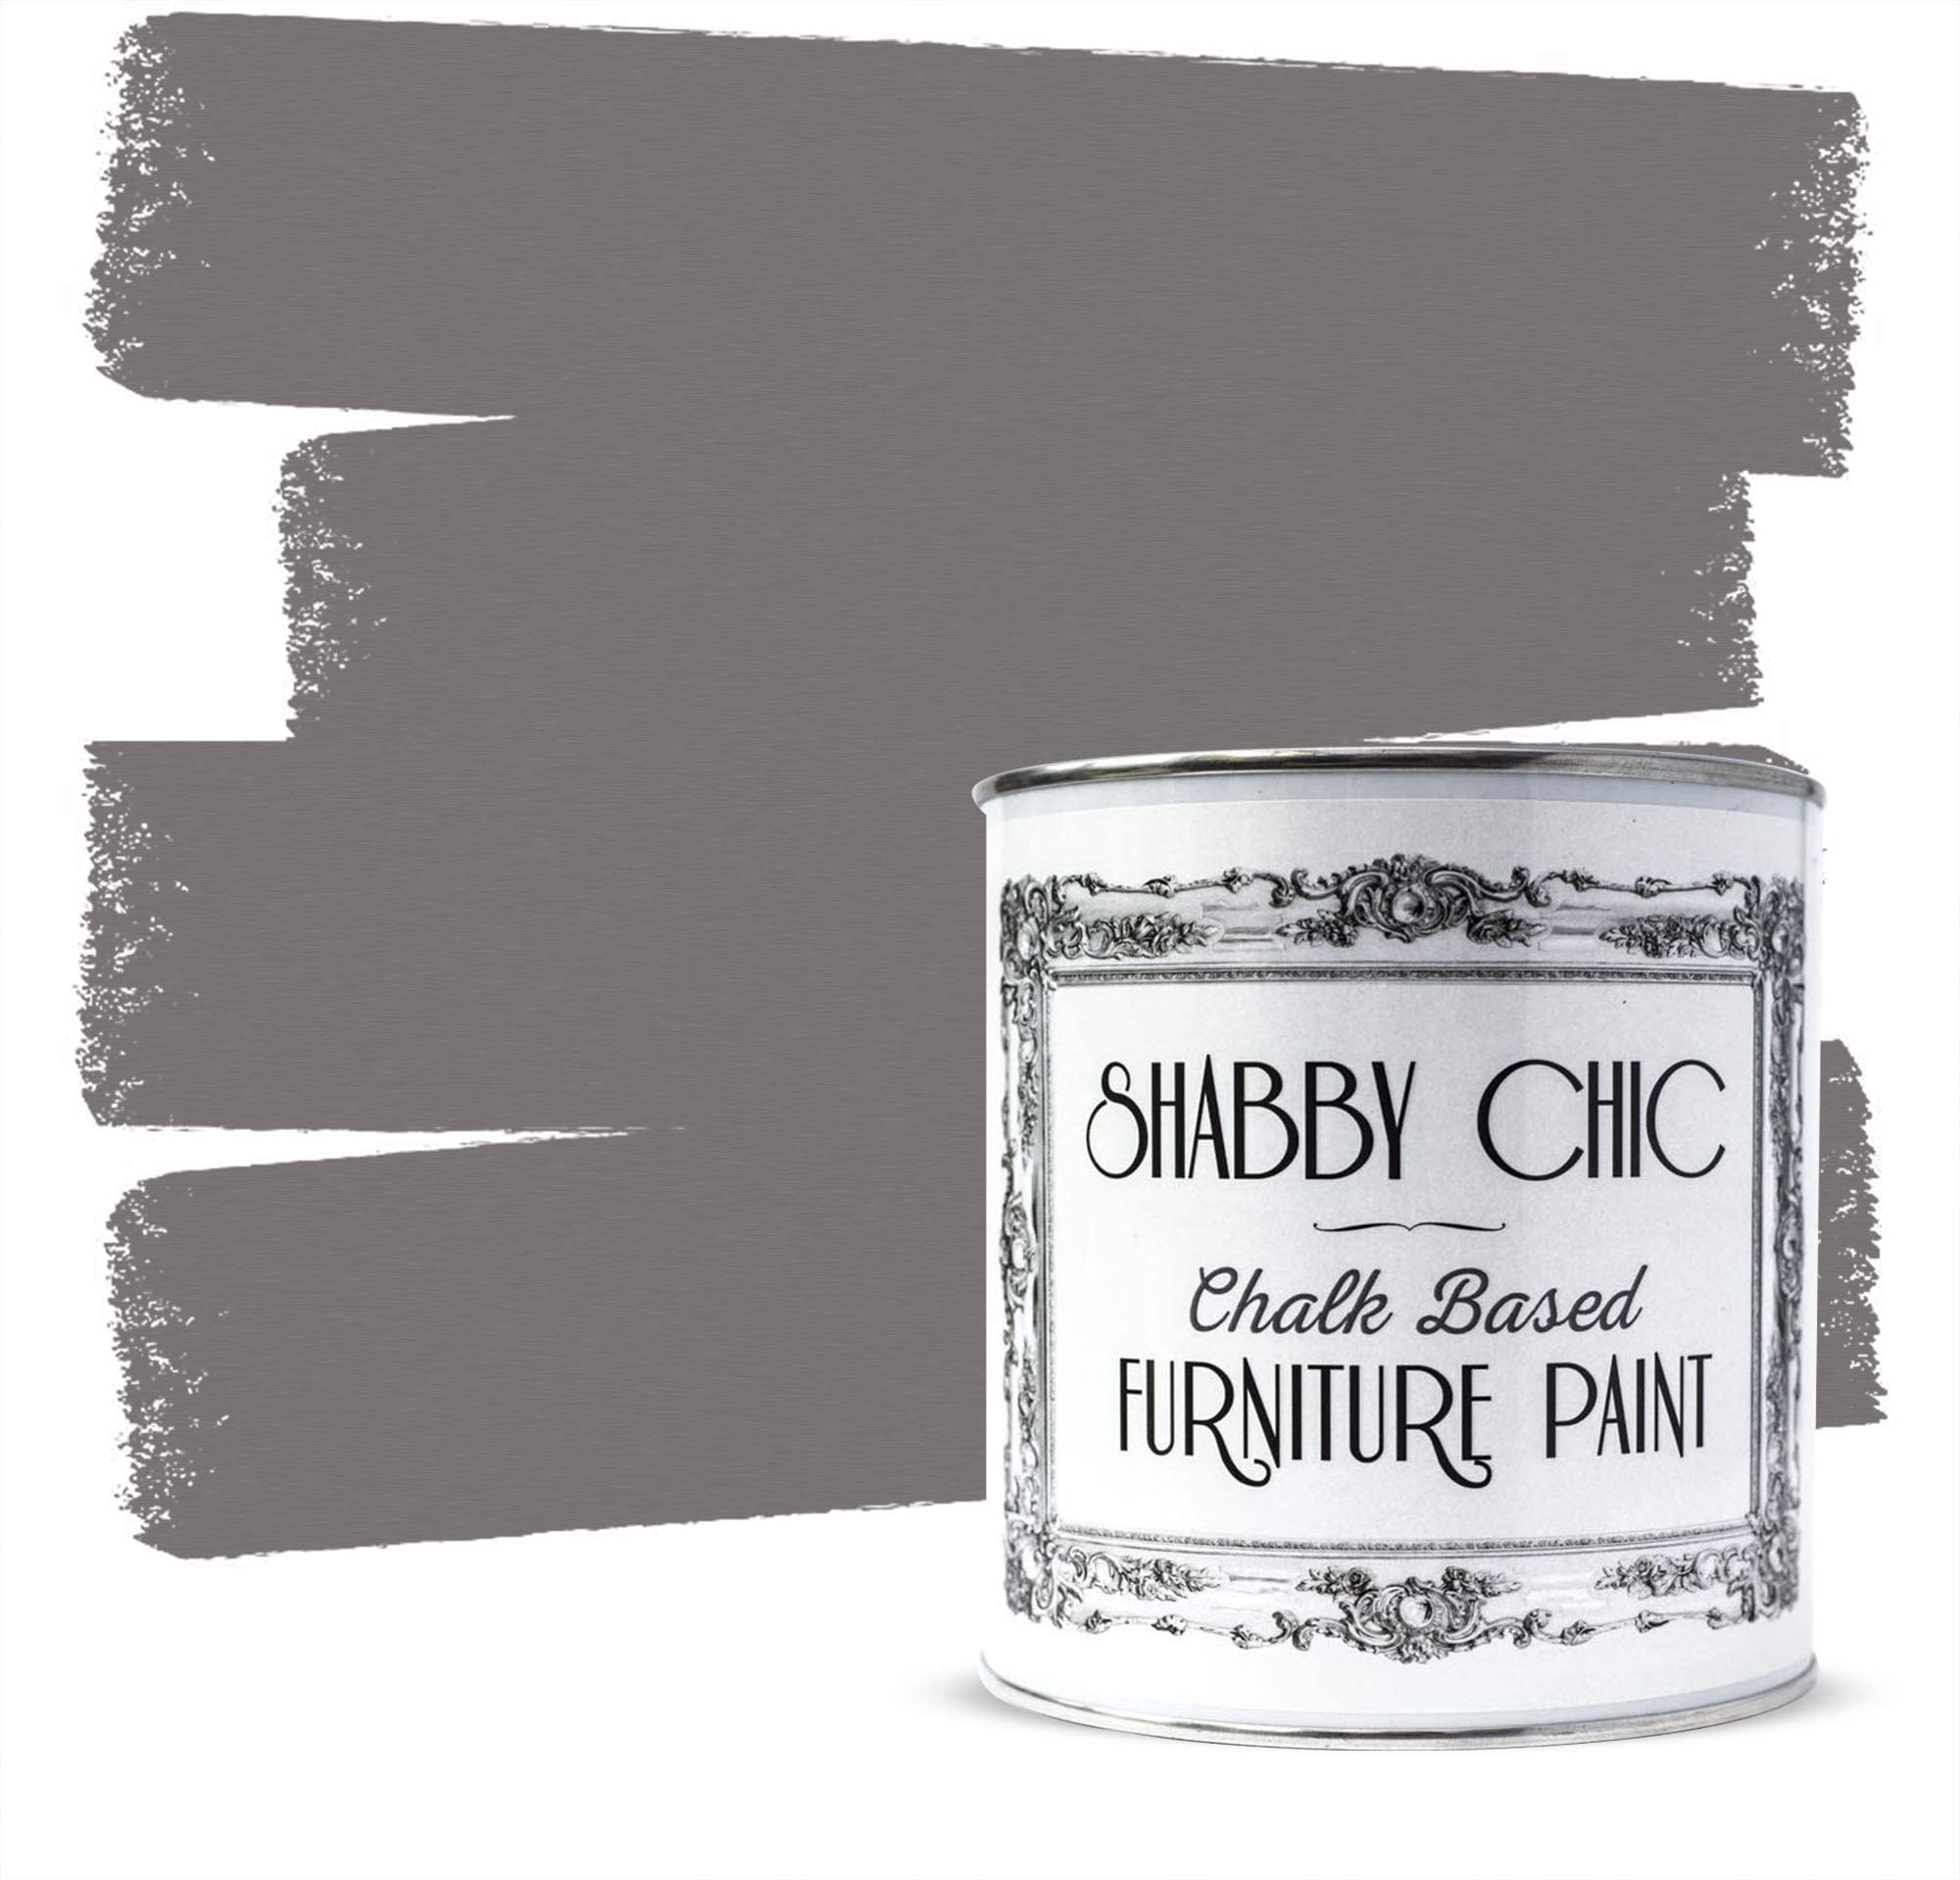 Shabby Chic Furniture Chalk Paint: Chalk Based Furniture and Craft Paint for Home Decor, DIY Projects, Wood Furniture - Chalked Interior Paints with Rustic Matte Finish - 250ml - Hot Cup Of